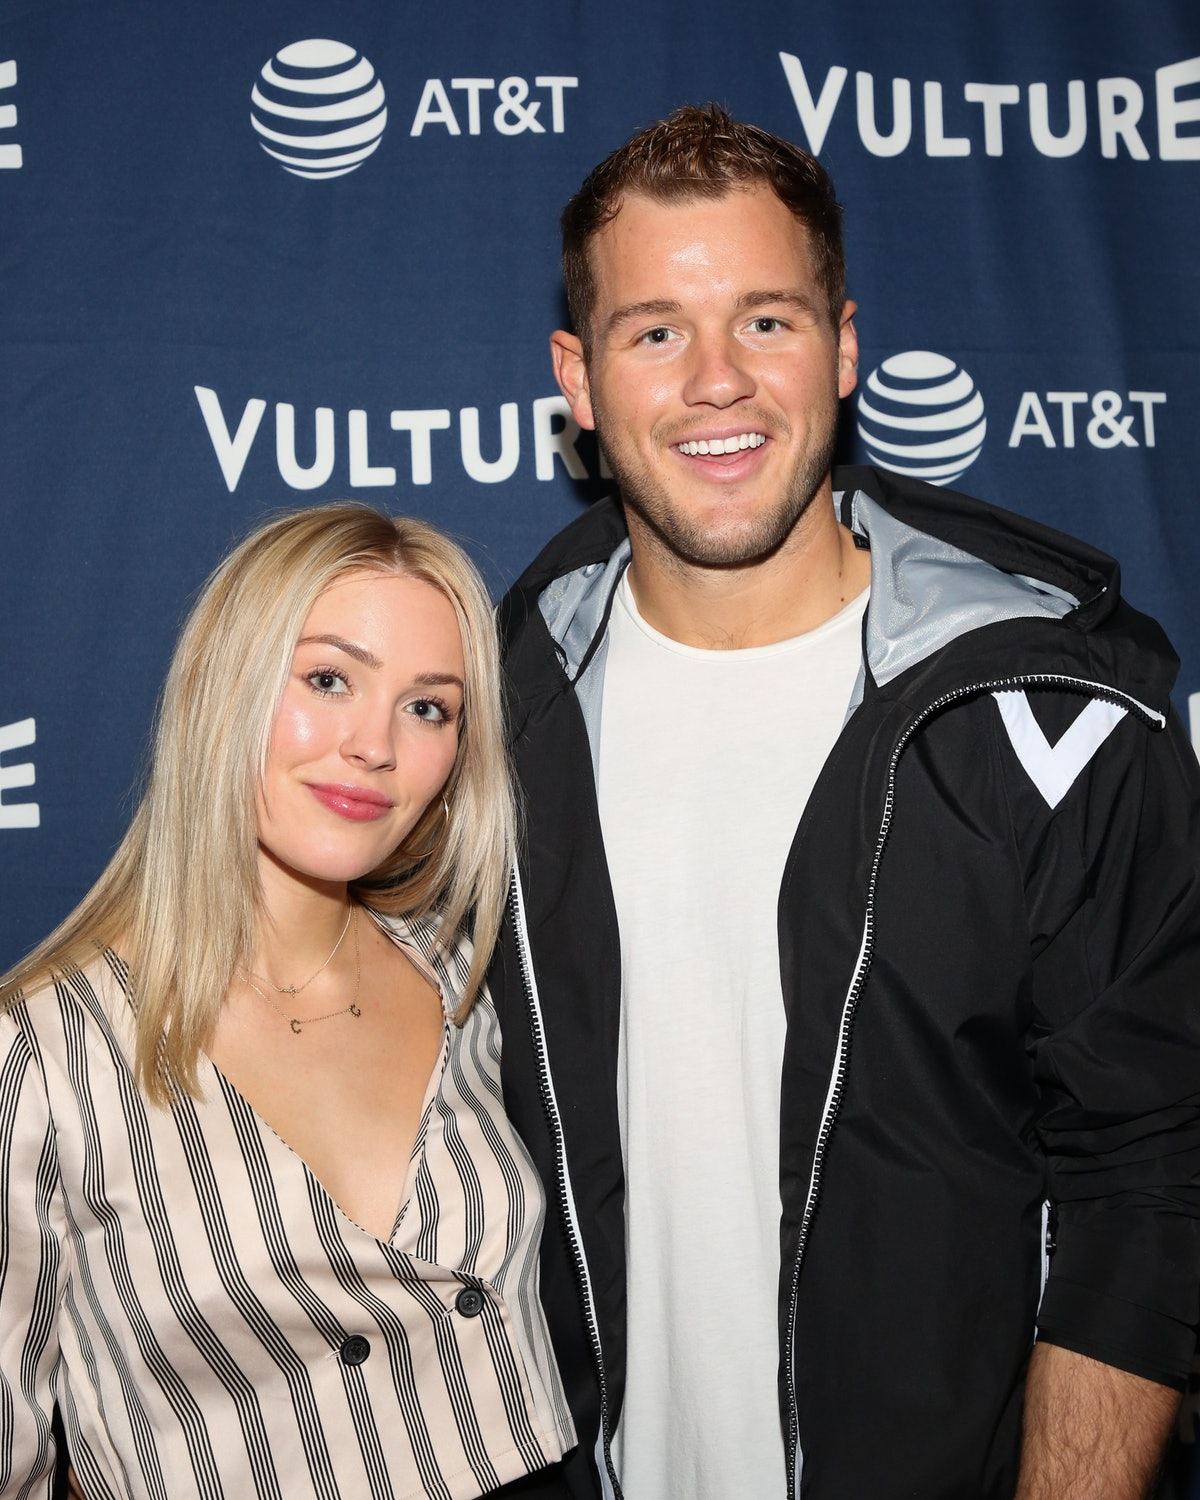 HOLLYWOOD, CALIFORNIA - NOVEMBER 09: Cassie Randolph (L) and Colton Underwood (R) attend the Vulture...